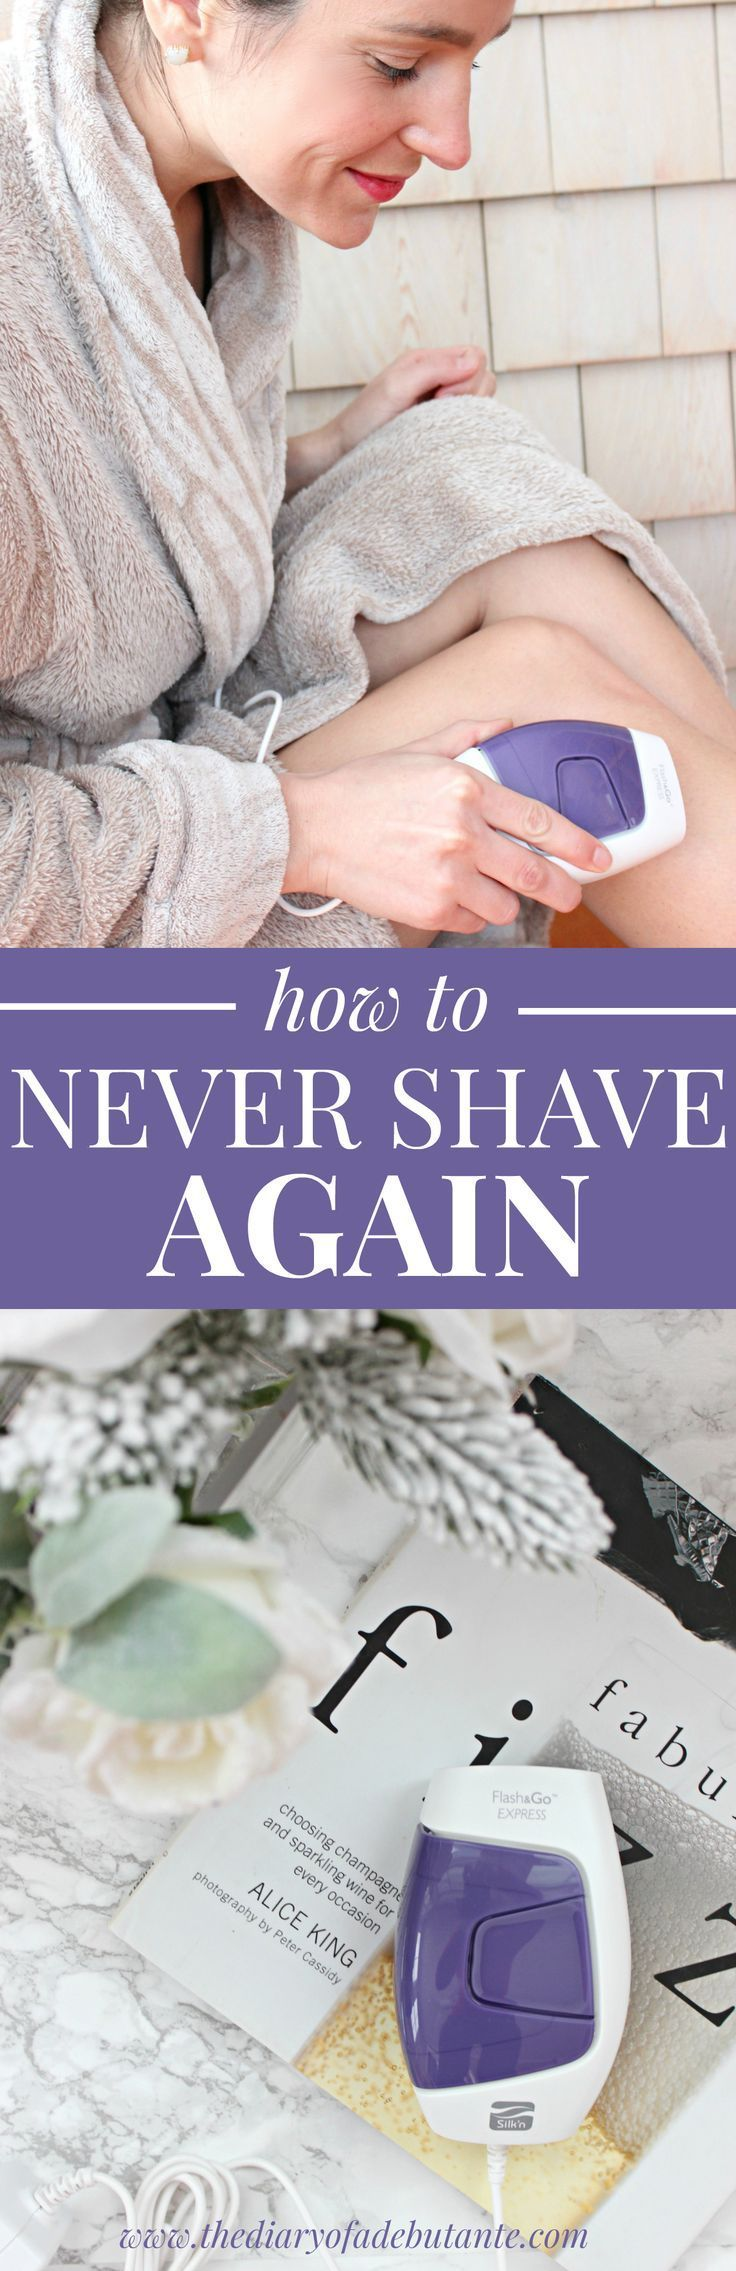 Never shave again with the Silk'n Flash&Go Express laser hair removal device. You can permanently removed unwanted hair anywhere below your cheeks on your face, on your legs, on your bikini line, and on your arms. Guys can use it, too!